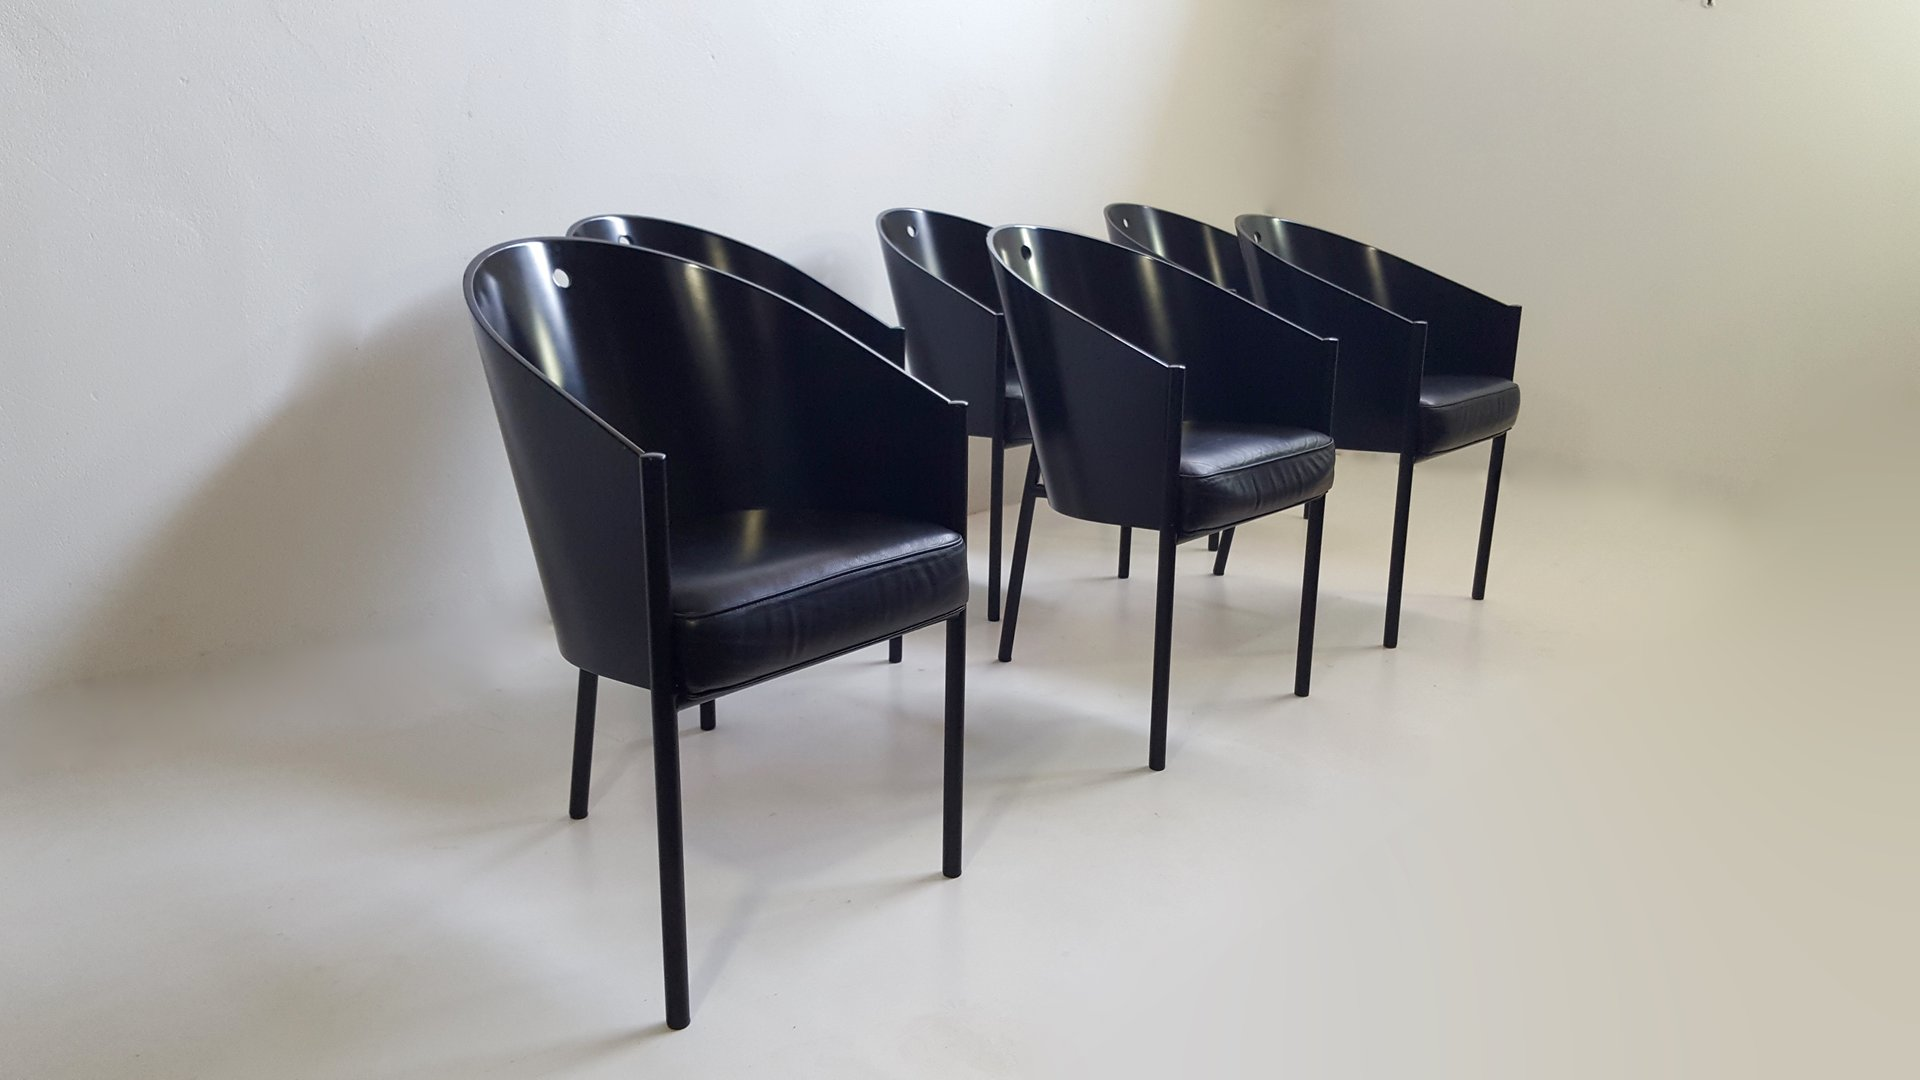 costes stuhl von philippe starck f r driade 1980er bei pamono kaufen. Black Bedroom Furniture Sets. Home Design Ideas